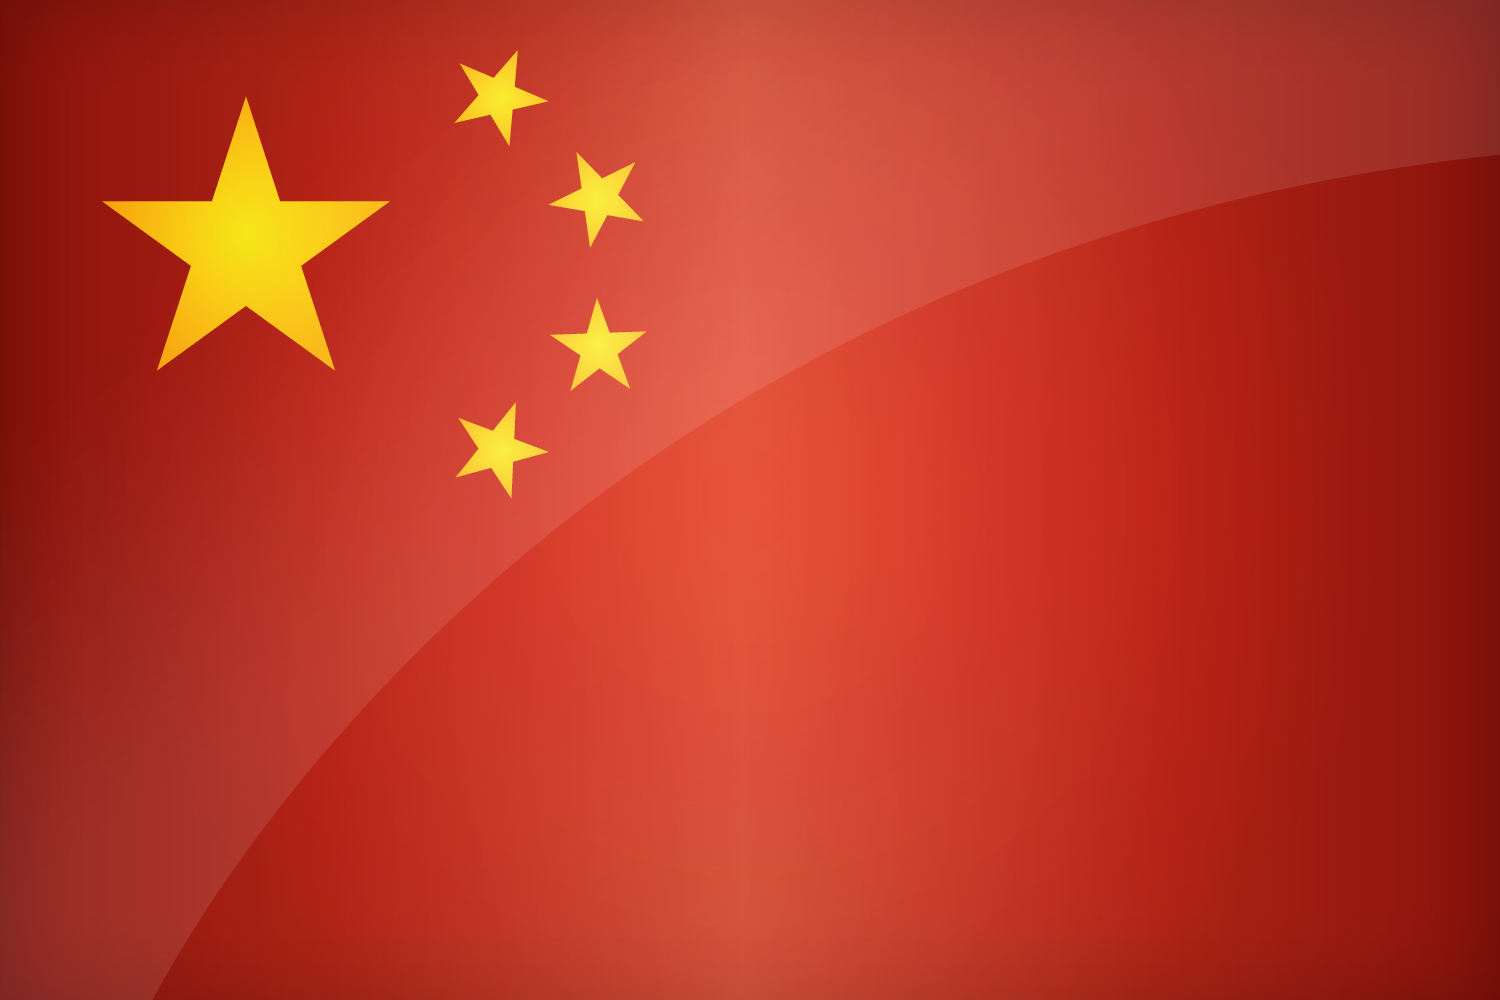 Flag China Download the National Chinese flag